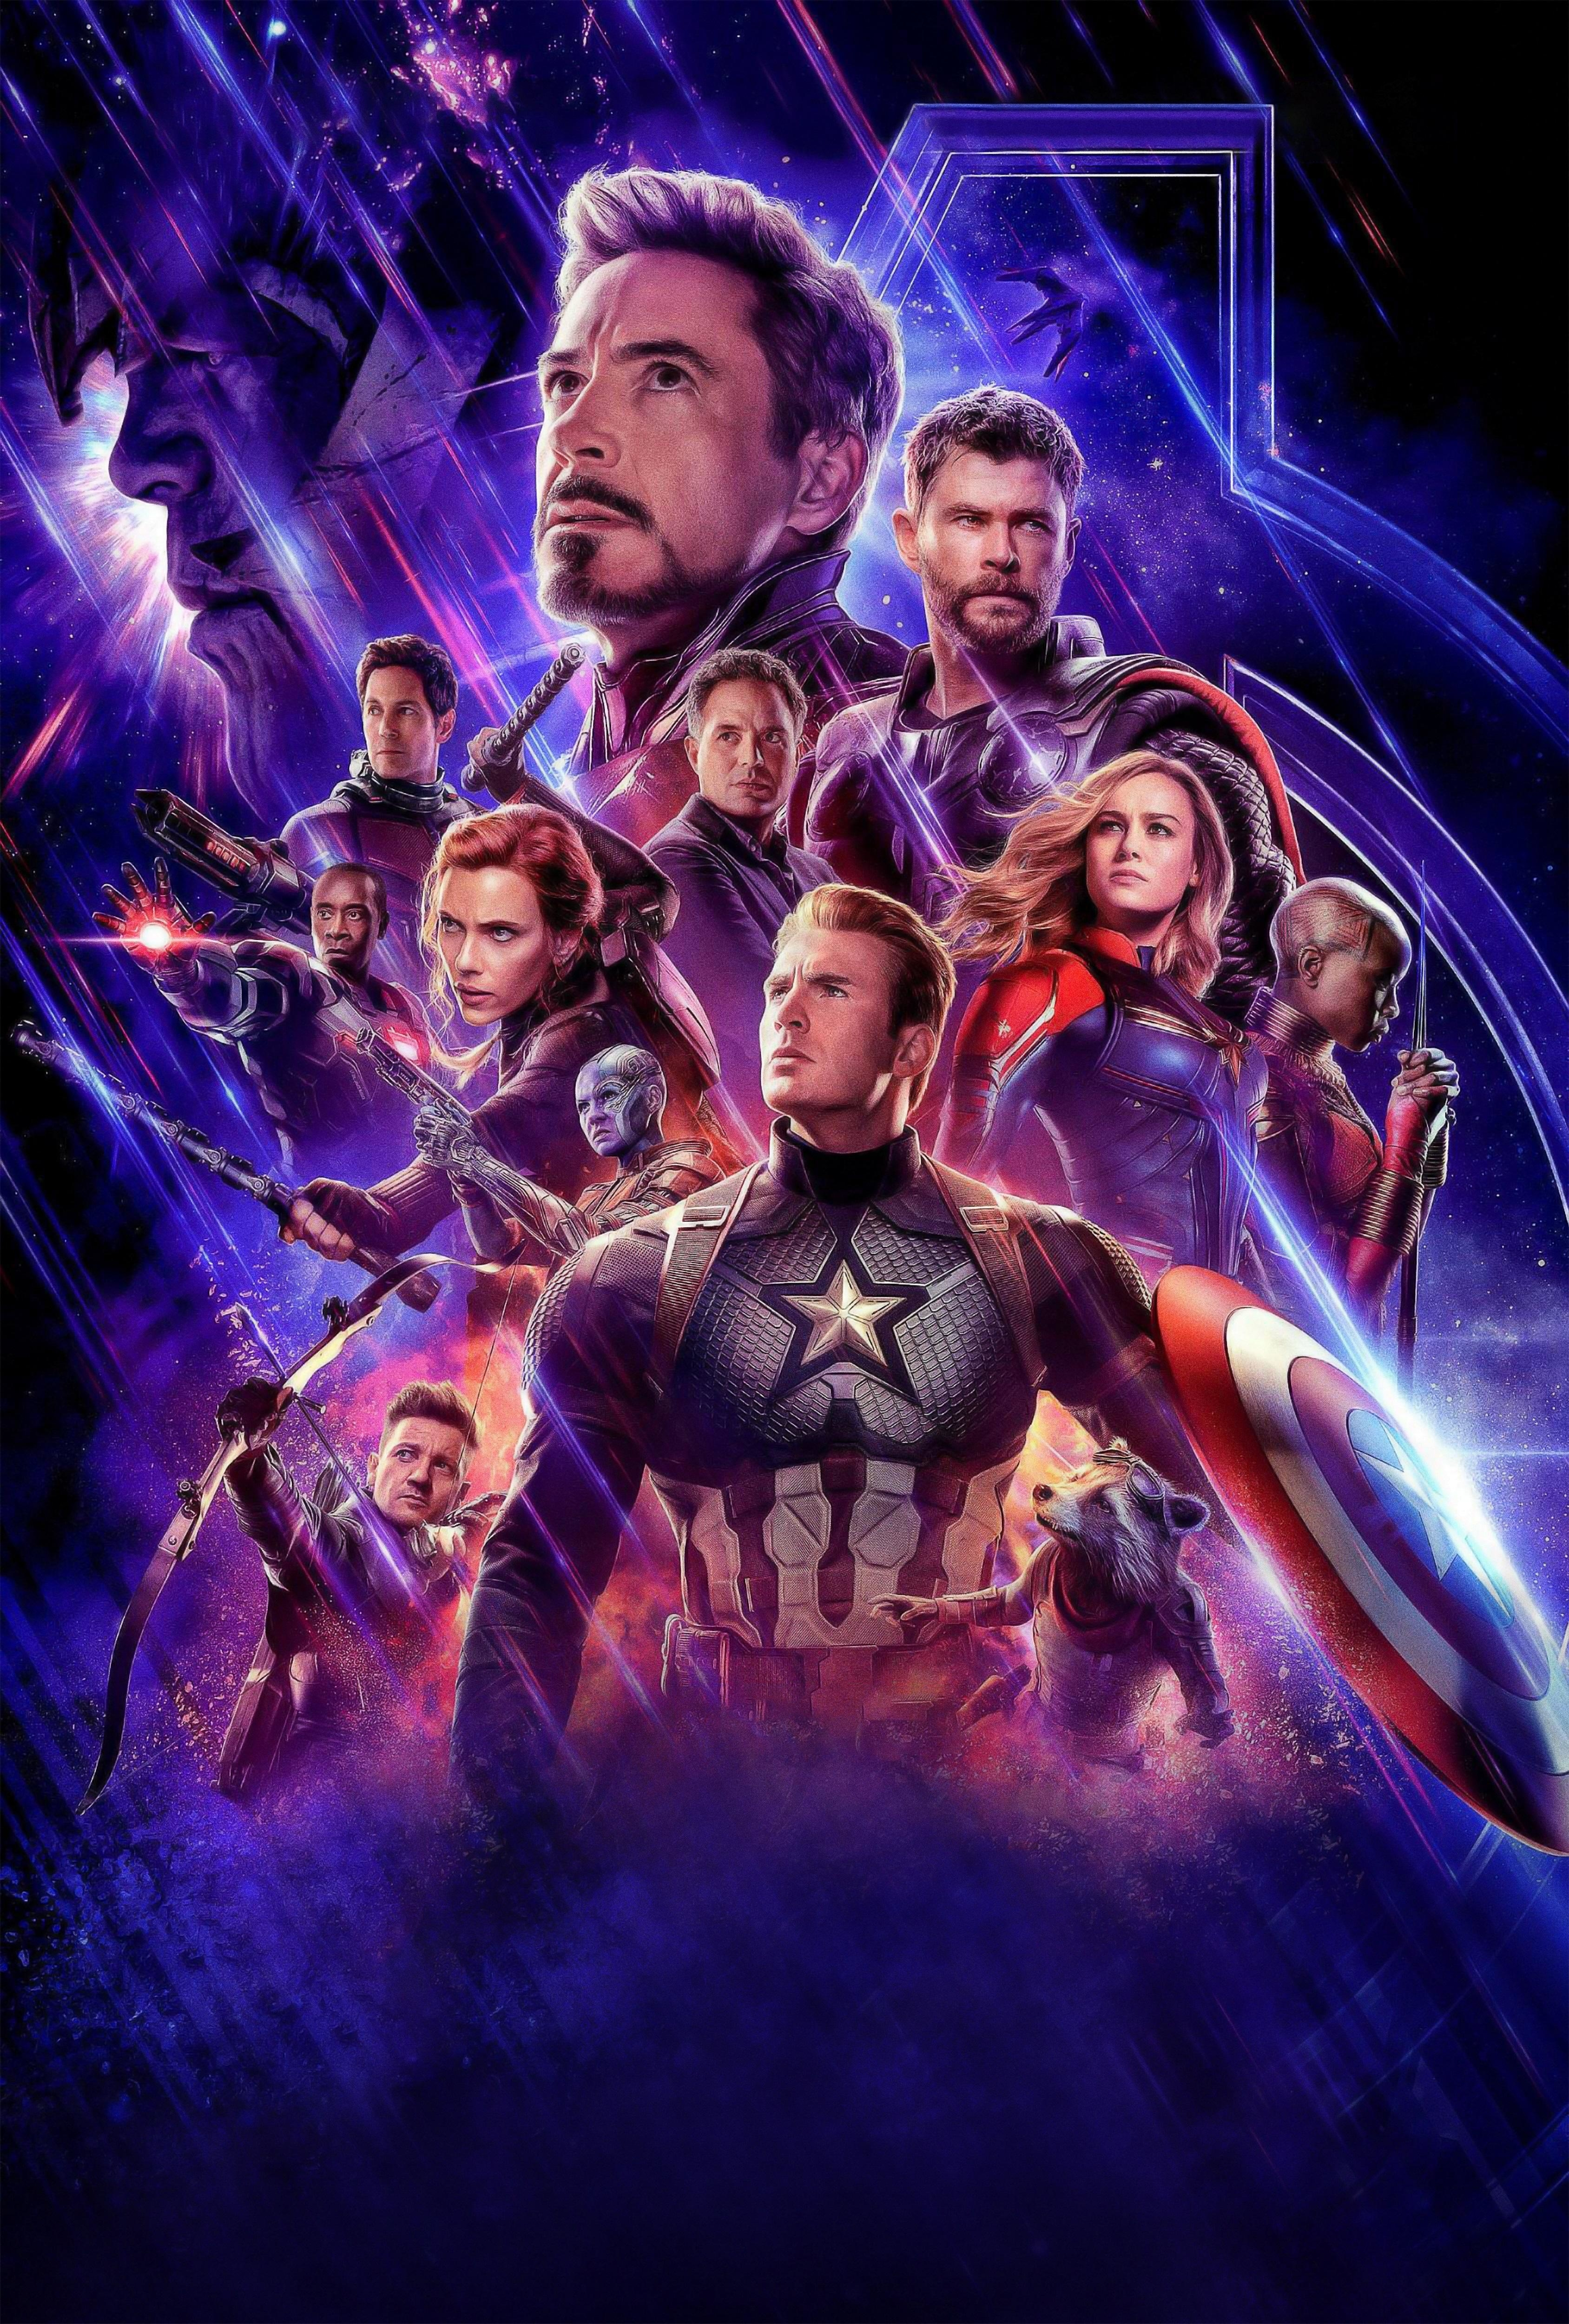 Poster Of Avengers Endgame Movie Wallpaper HD Movies 4K 3376x5000